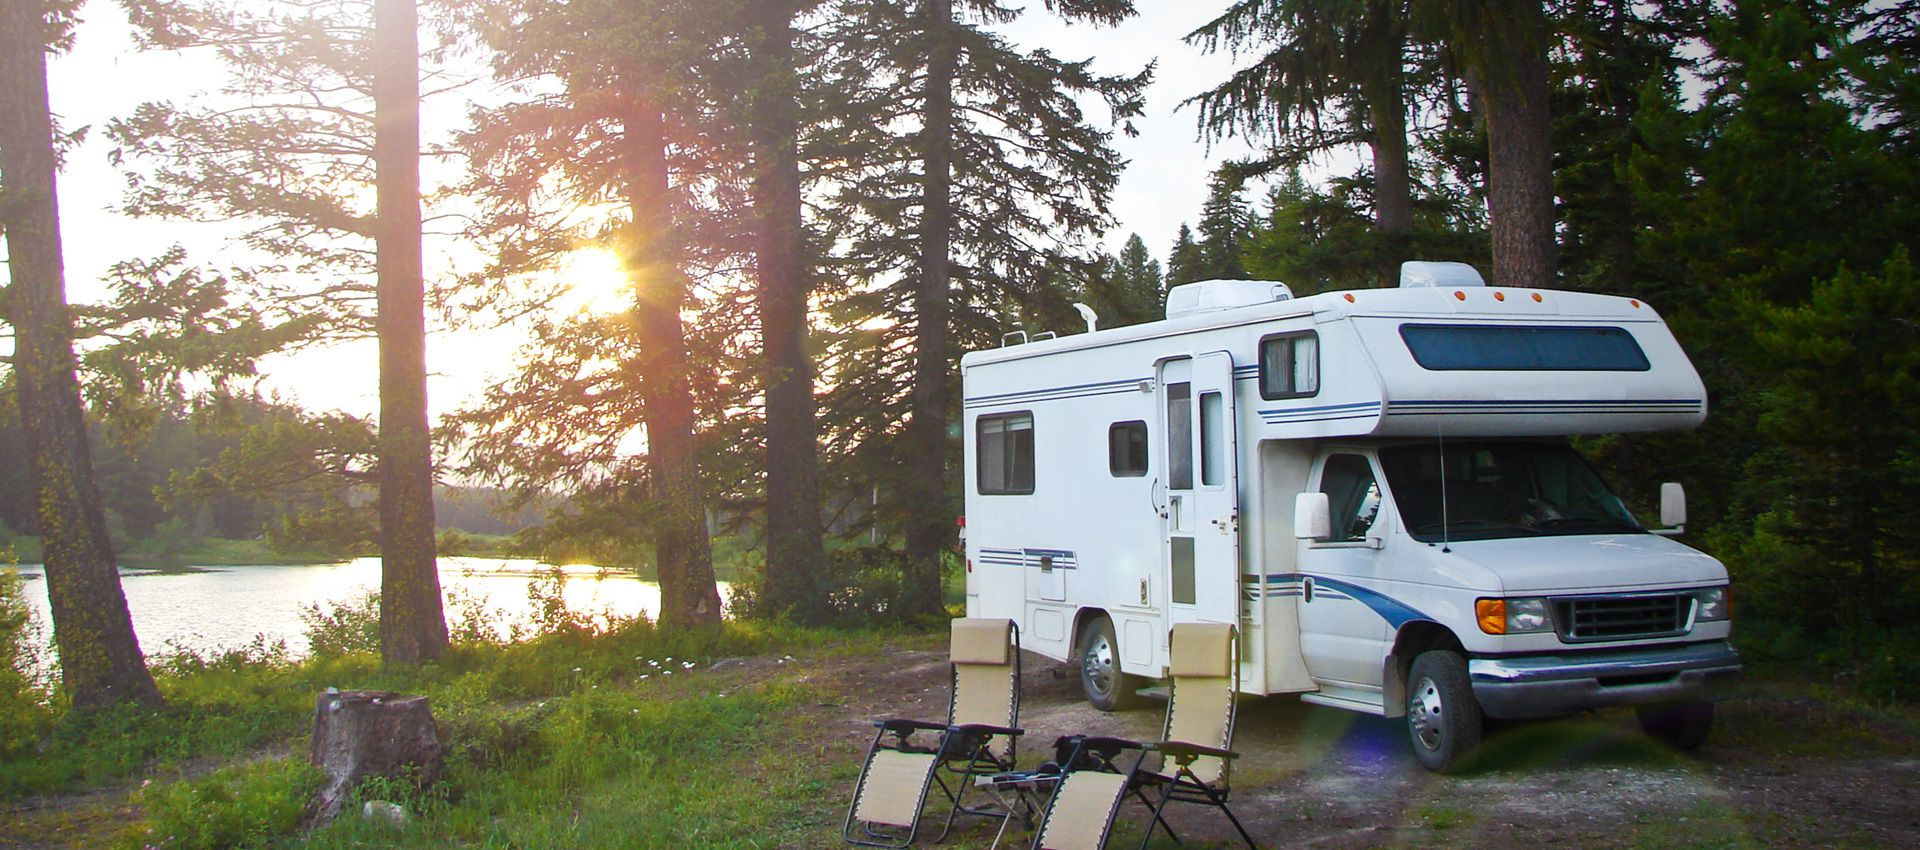 9 Campsites In Bc That We Love And So Will You Capricmw